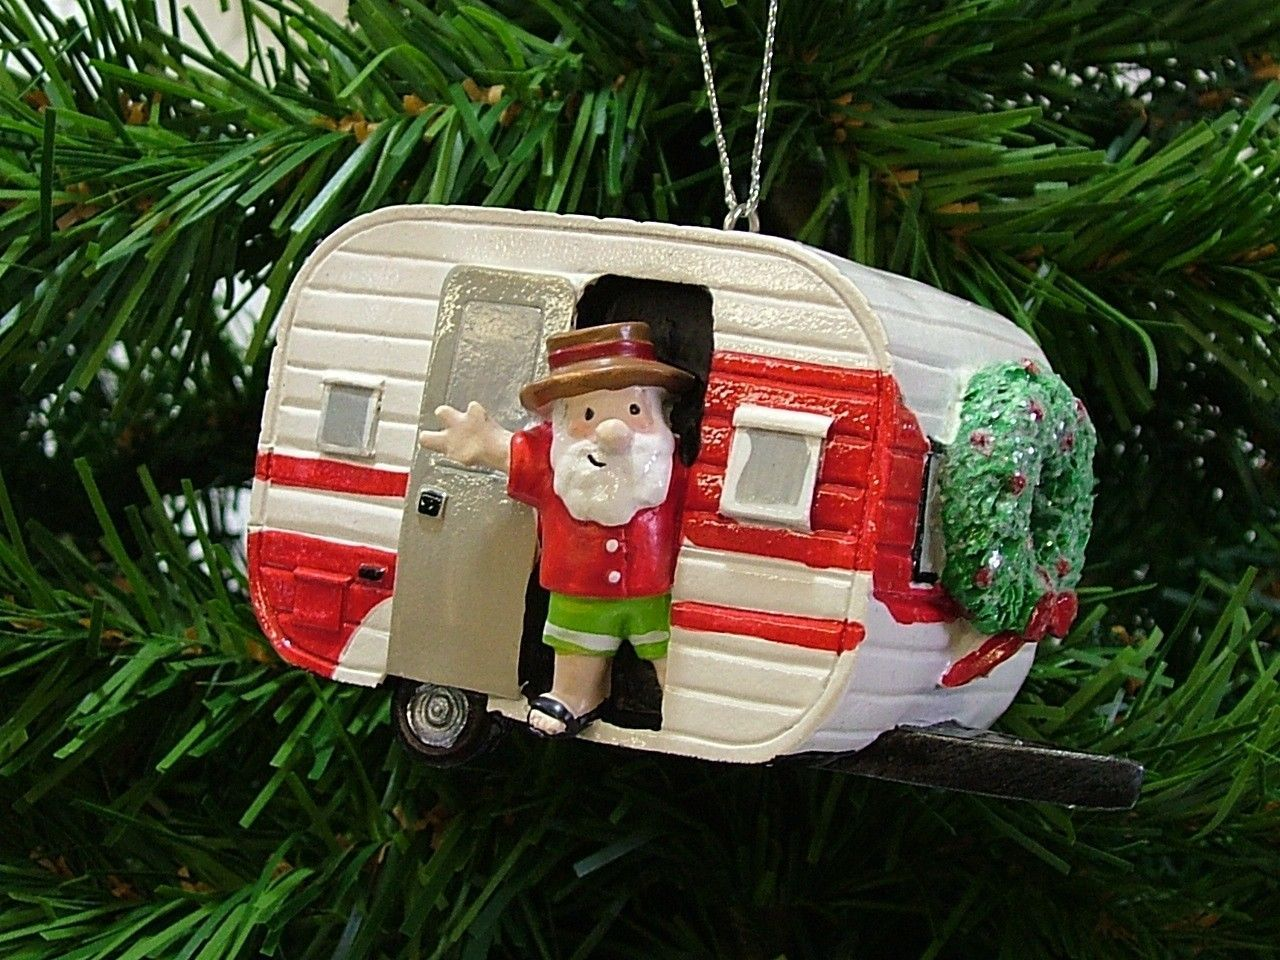 Camping christmas tree ornaments - New Red White Vintage Outdoor Trailer Santa Camper Christmas Tree Ornament